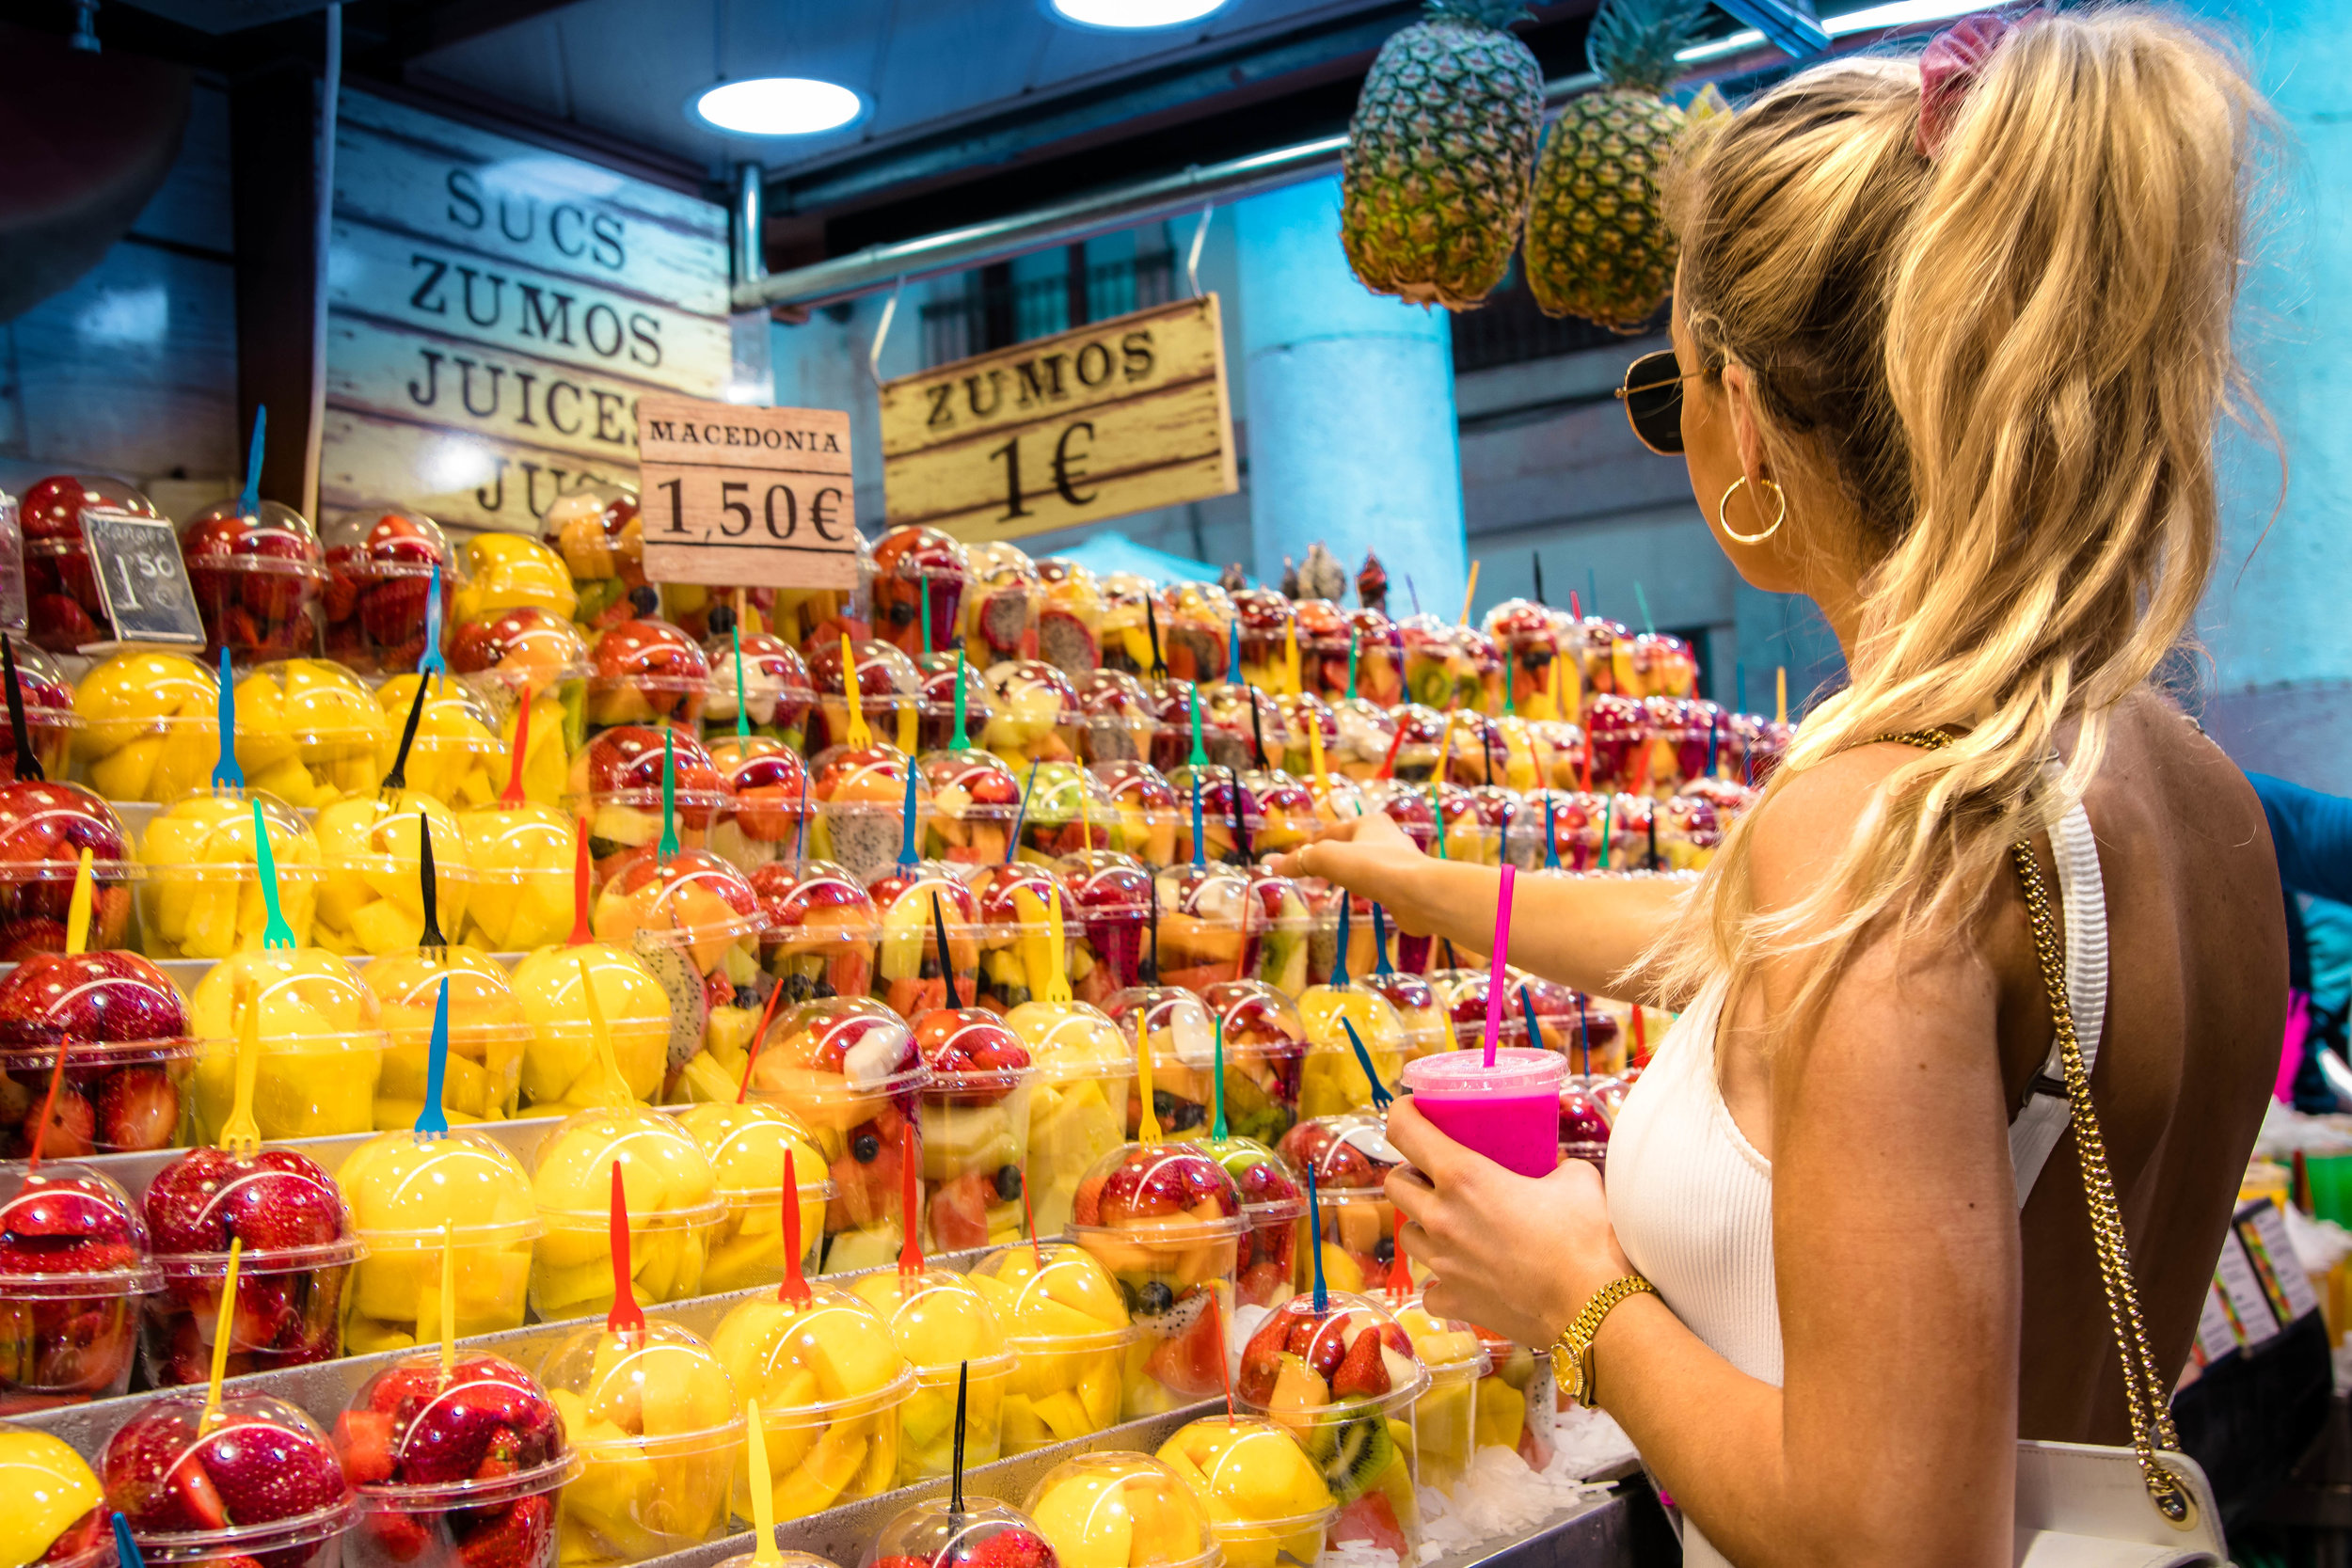 la boqueria - Mercat de la Boqueria is a place that you can spend hours... that is if you're a food addict like myself.  This is indoor market hall is filled with hundreds of different food stands that is the perfect spot for lunch.My tip: grab a bite from multiple stands, because everything is pretty much tapas style.